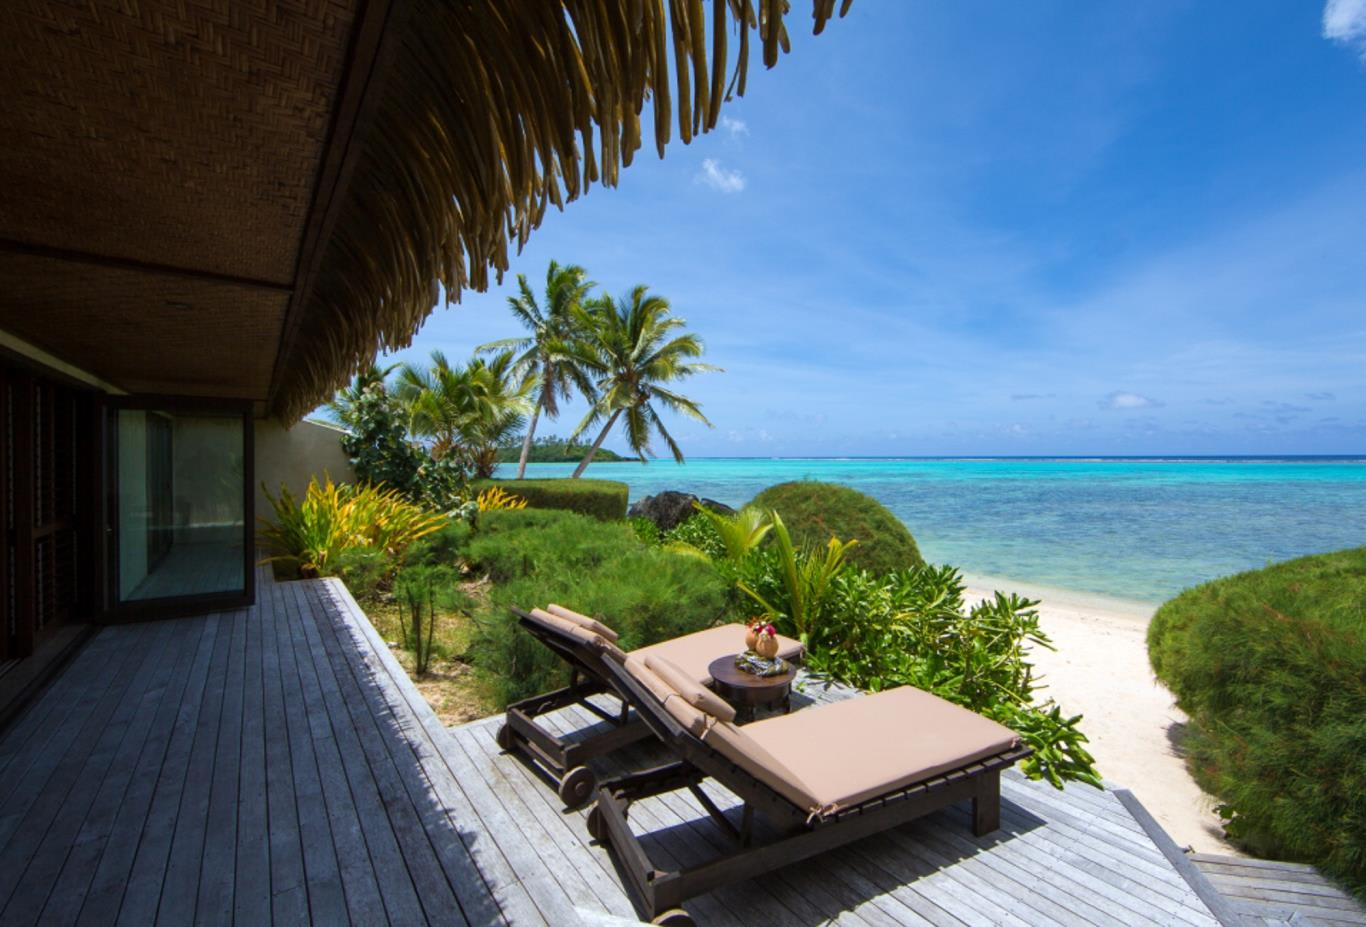 Ultimate Beachfront Villla Lagoon and Deck